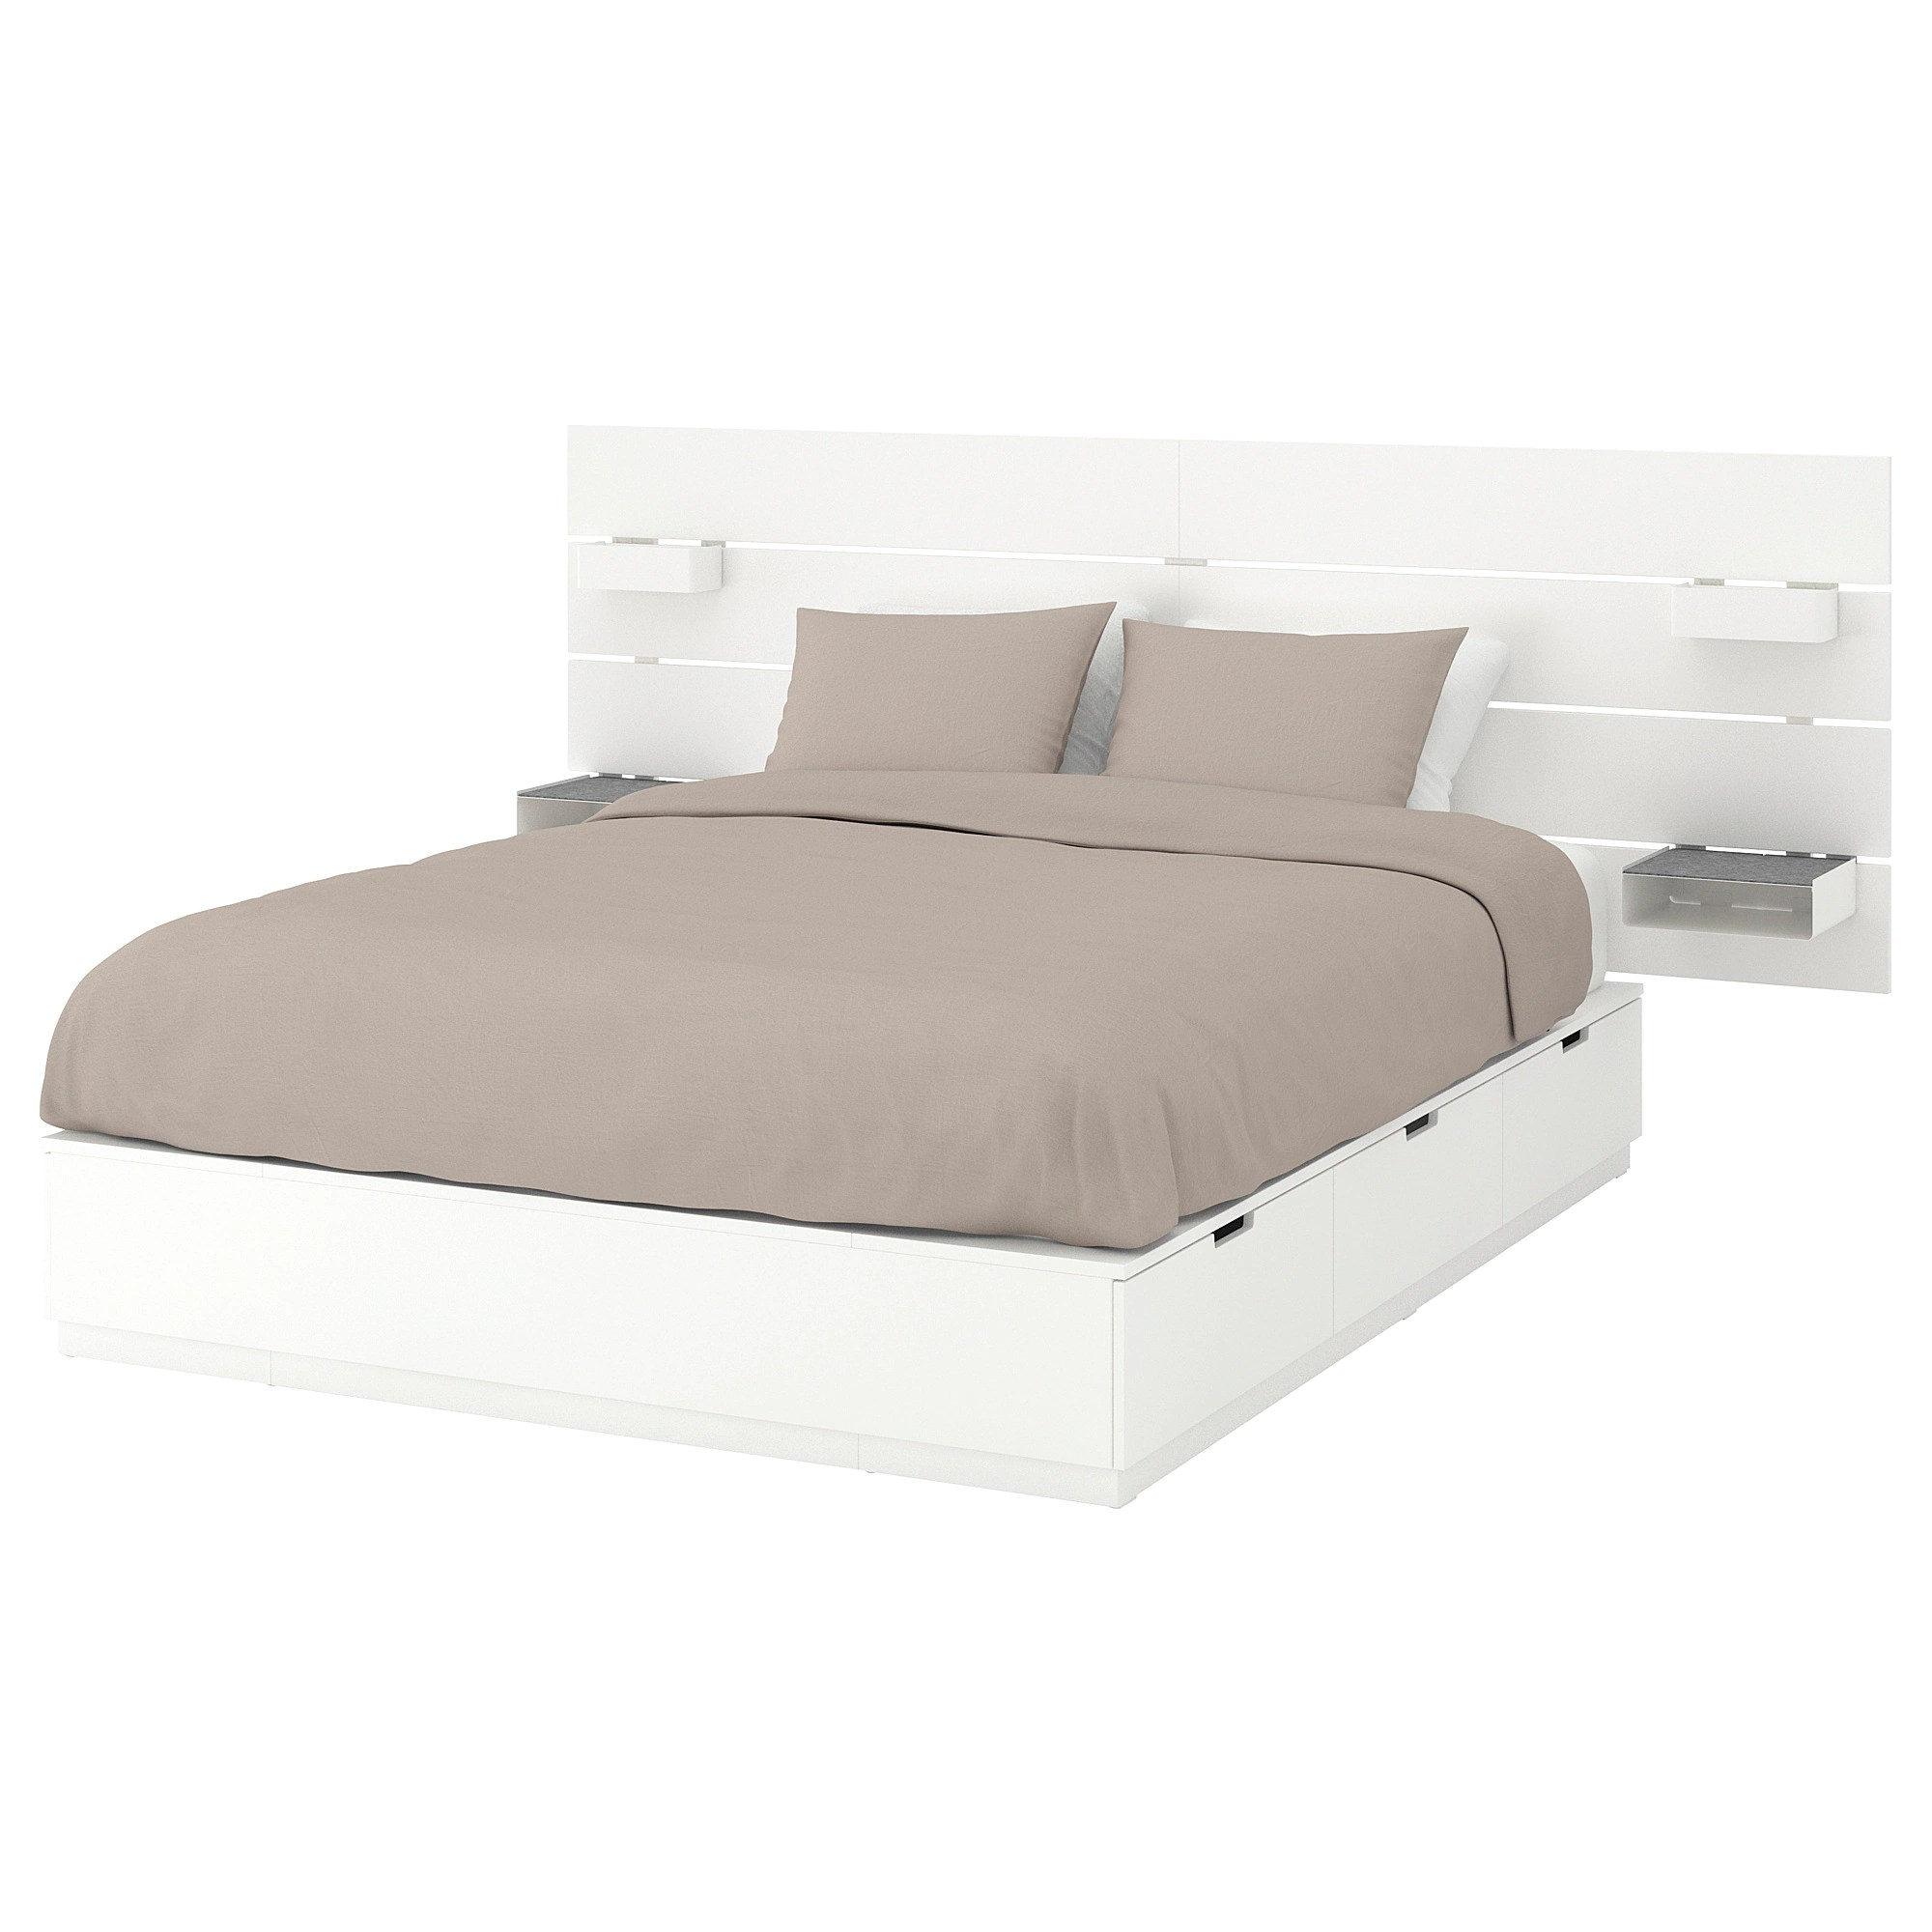 Ikea Brimnes Bett 160x200 Bed Frame W Storage And Headboard Nordli White